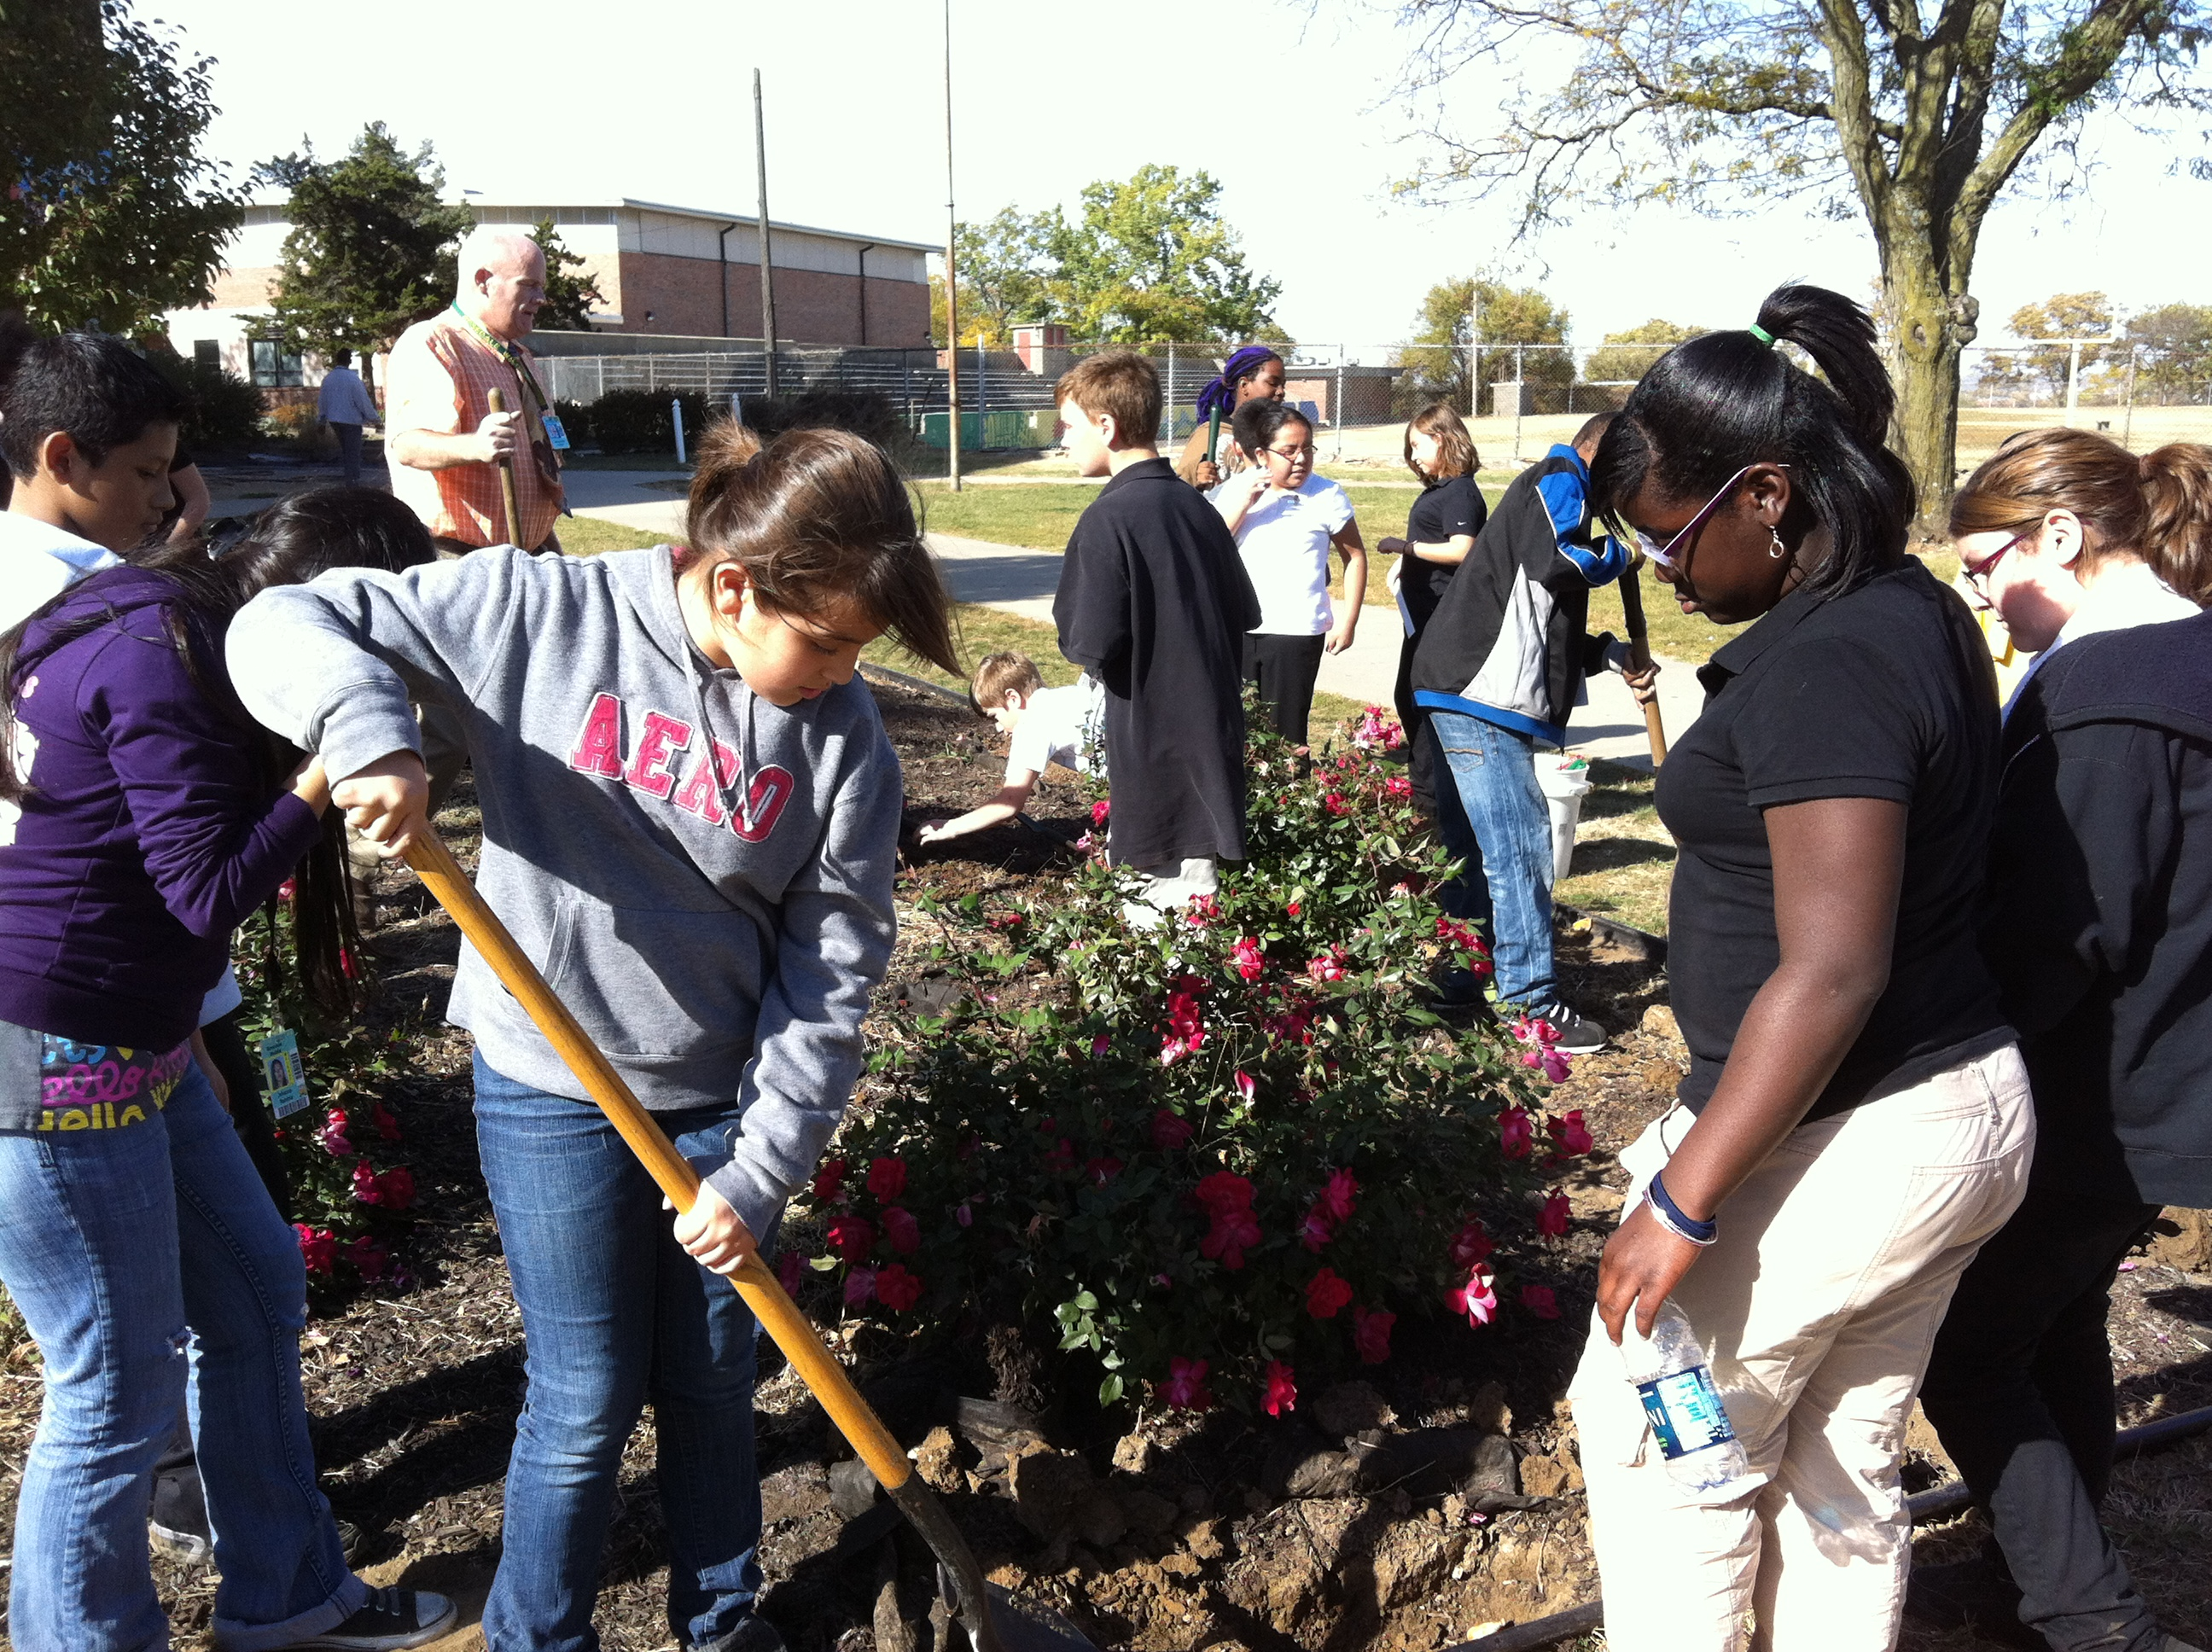 Planting fall bulbs at Rosedale Middle School